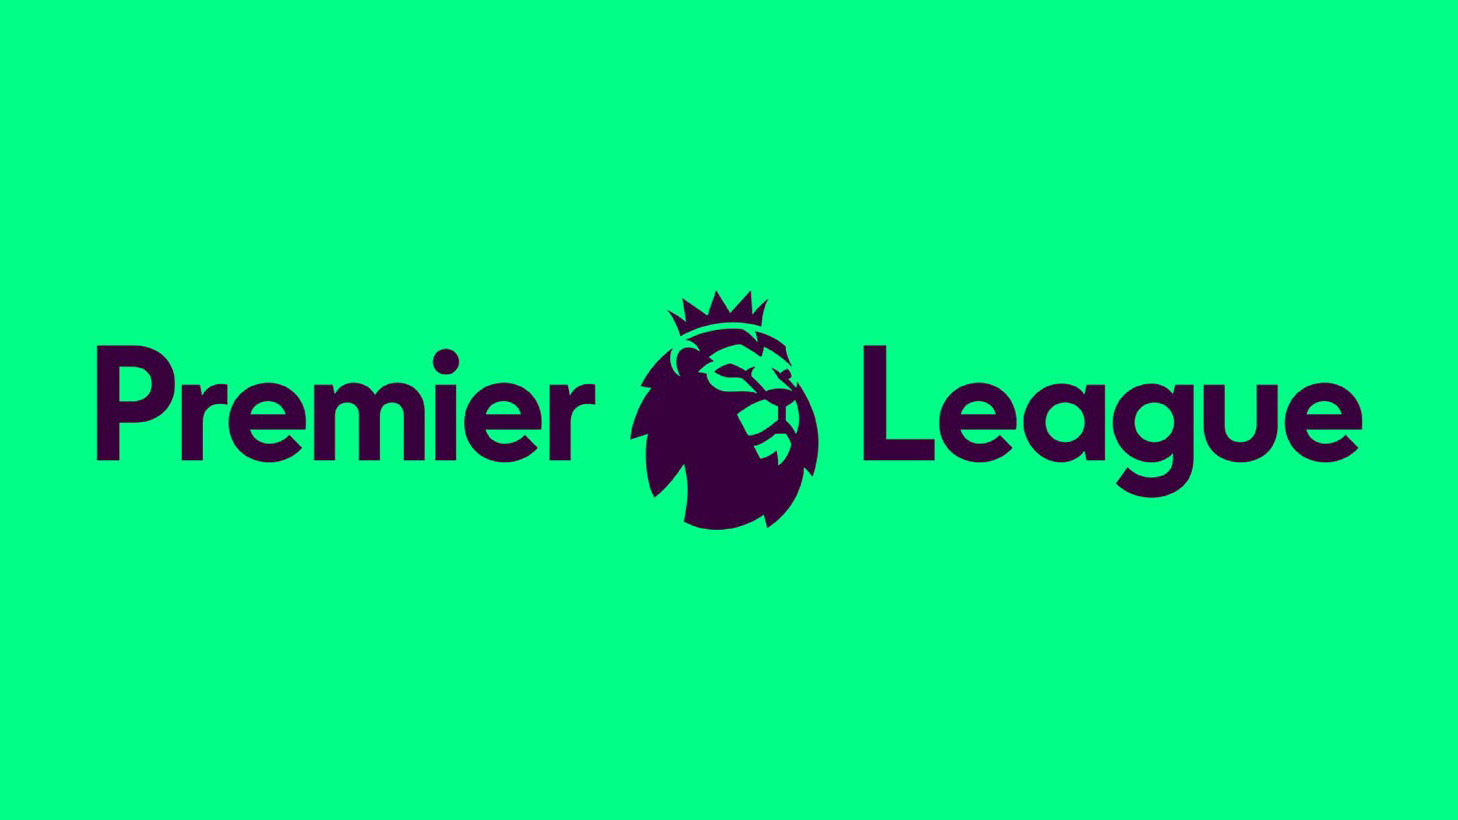 Logo design: Premier League